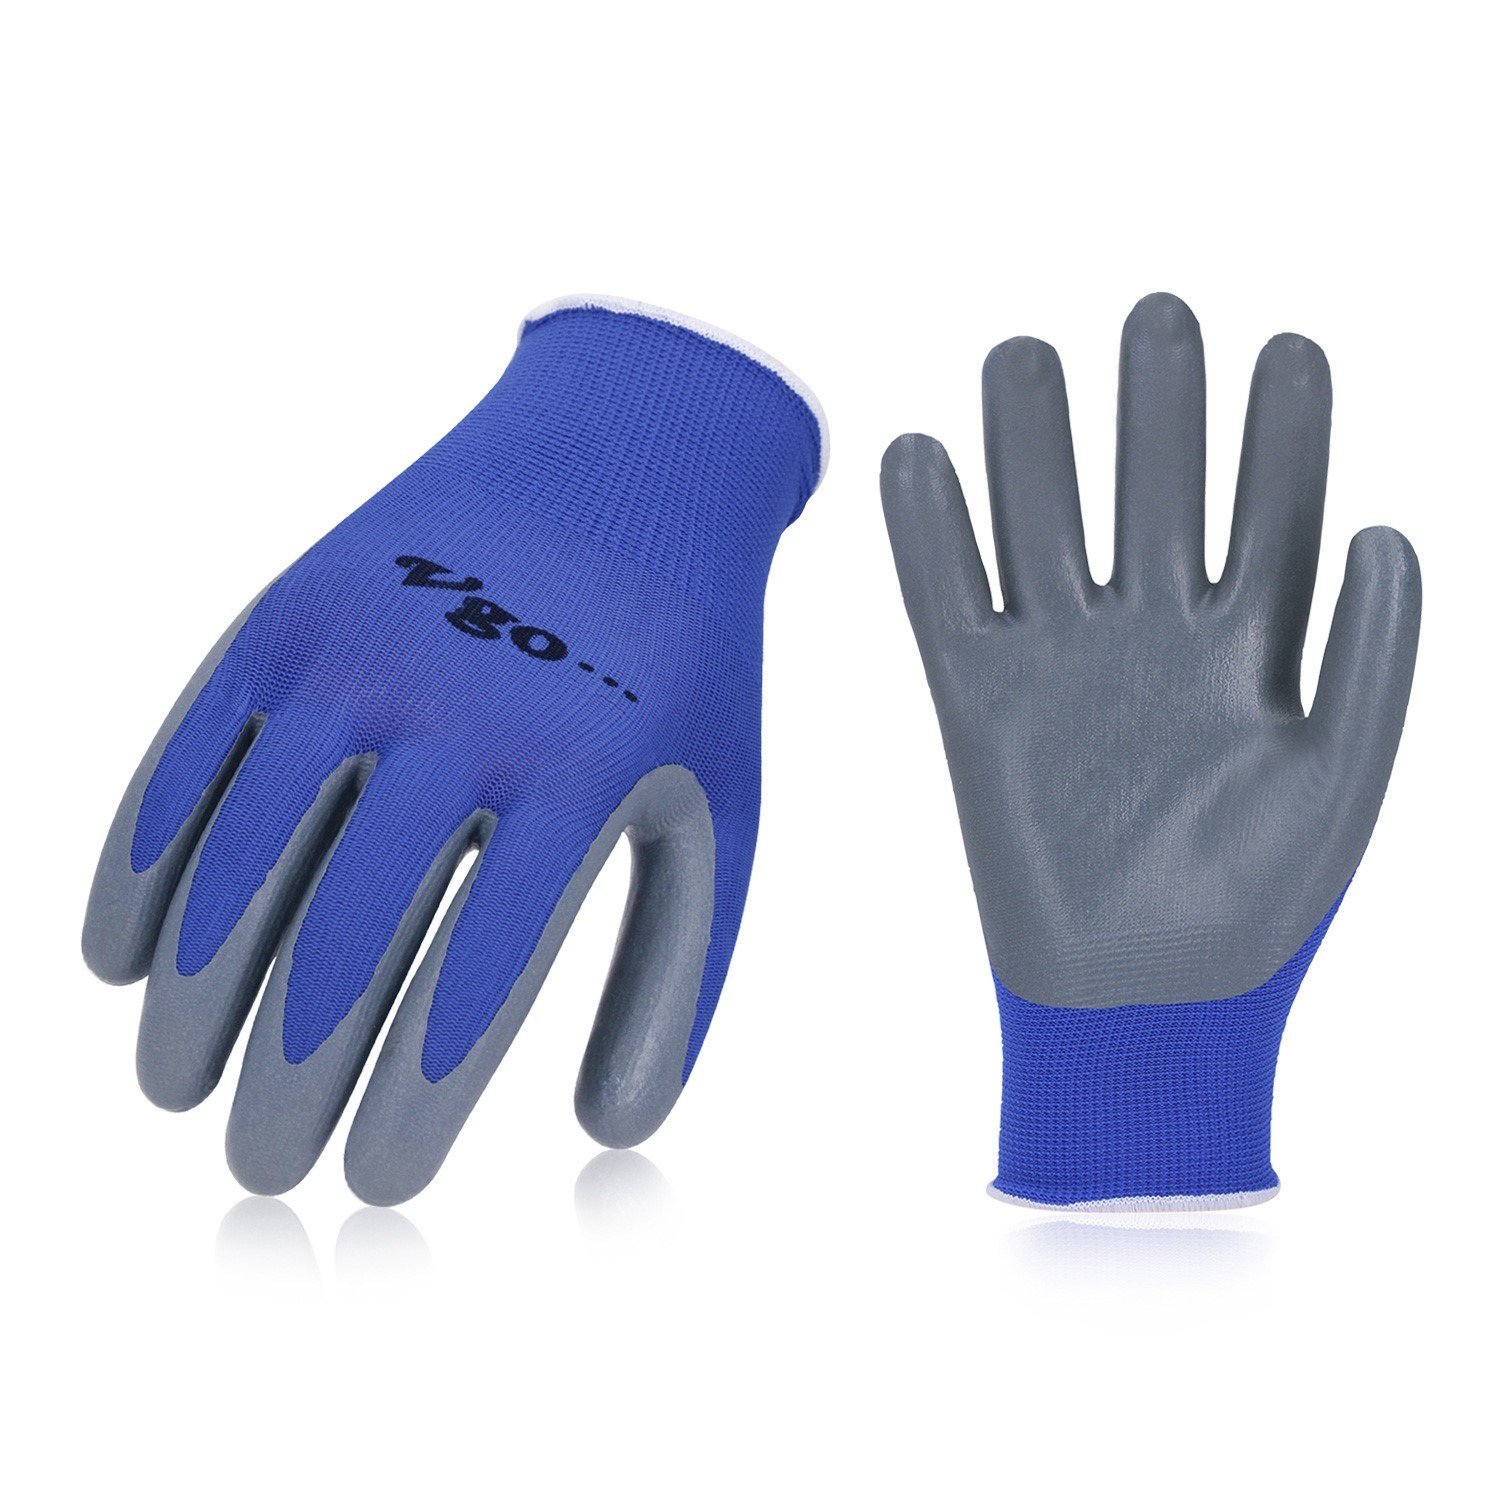 Vgo 10Pairs Nitrile Coating Gardening and Work Gloves (Size XL, Blue, NT2110) product image